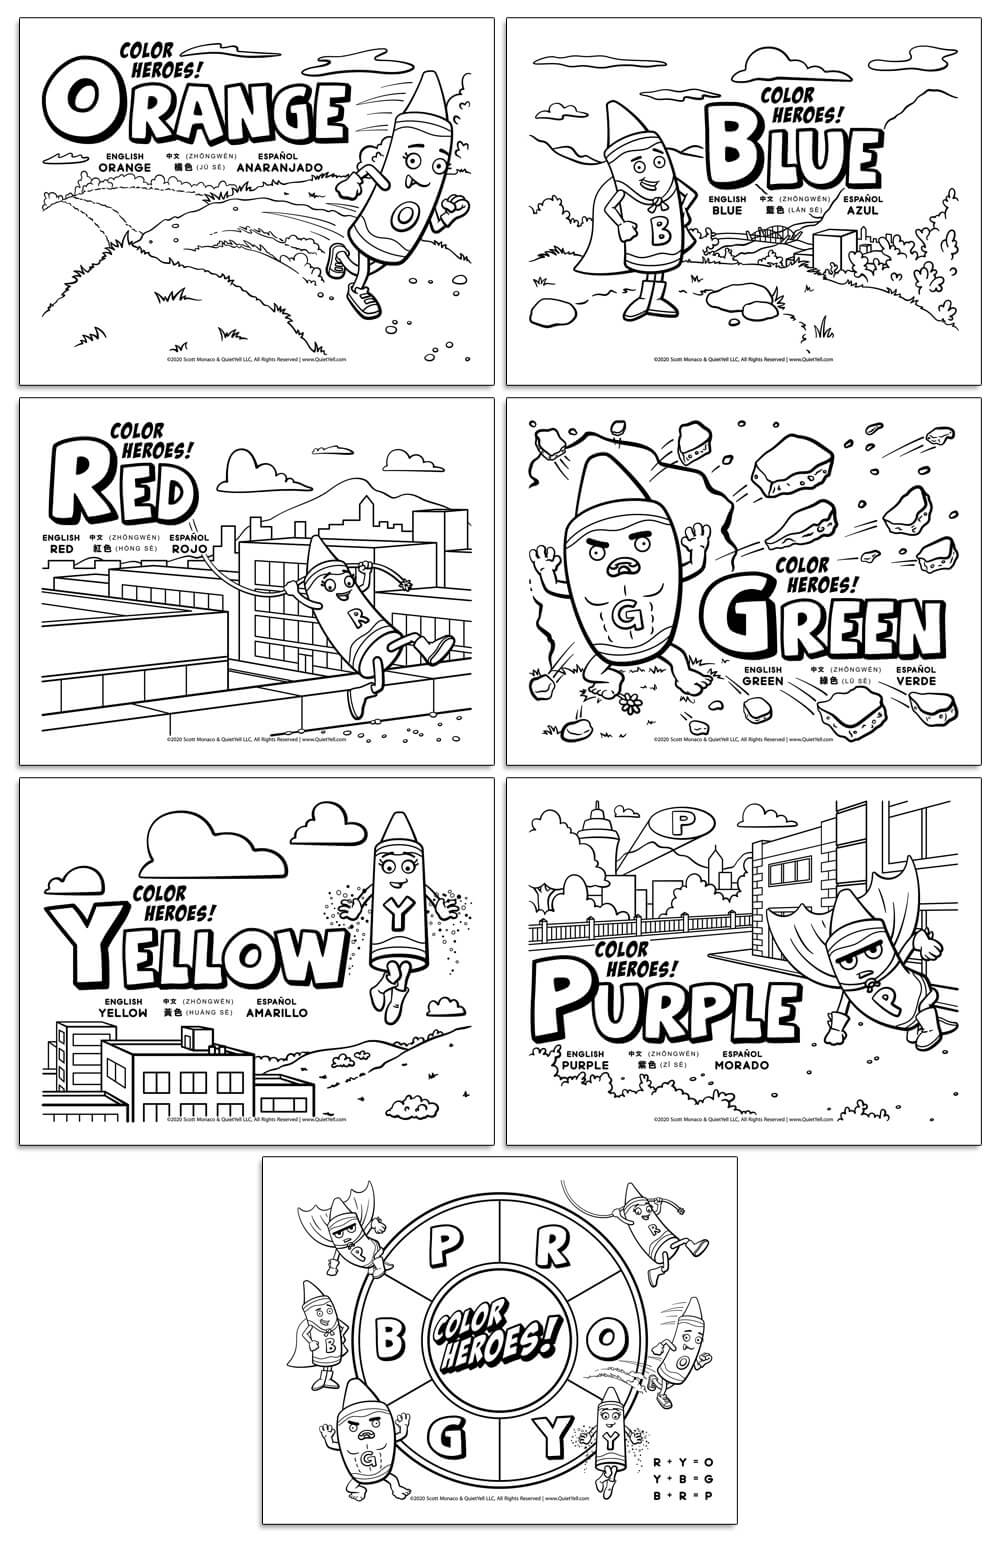 Coloring Activity Sheet to Learn Colors in English, Chinese, and Spanish by Scott Monaco of QuietYell LLC   www.QuietYell.com